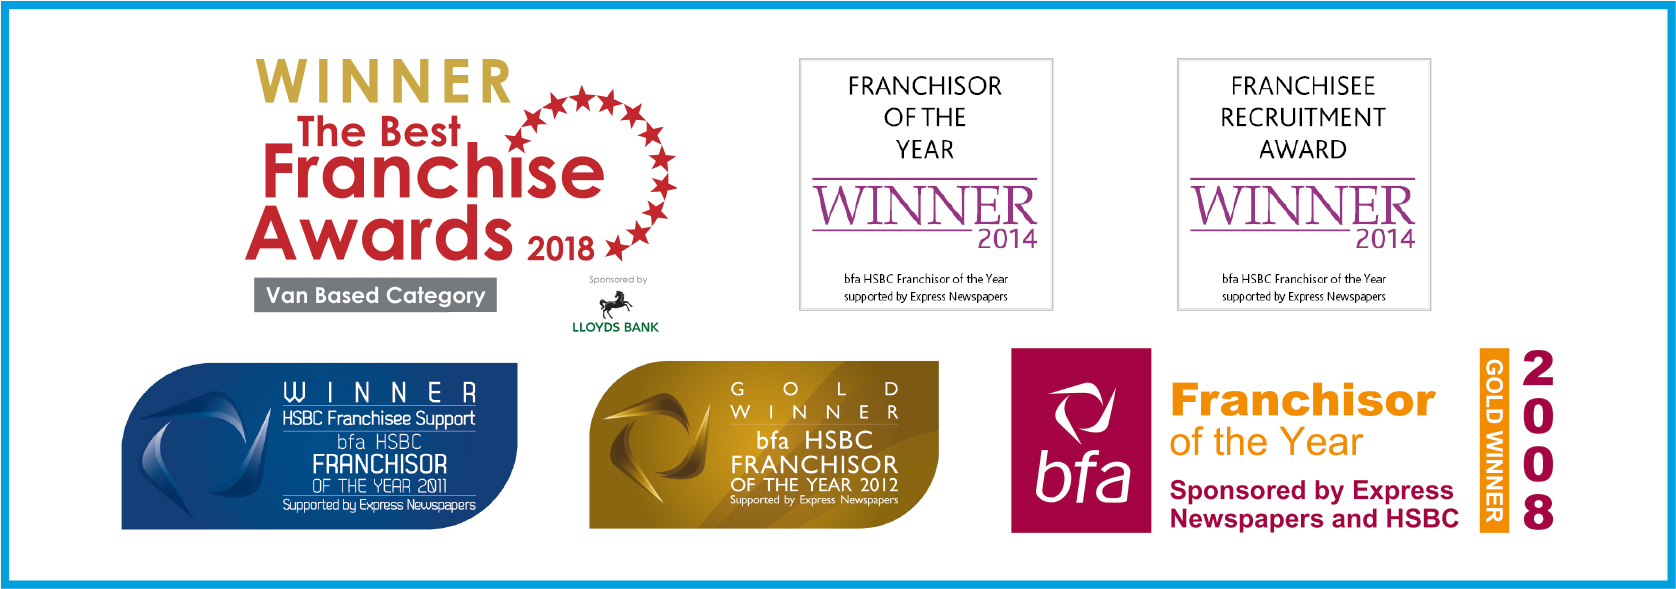 Franchisee Support Page Awards